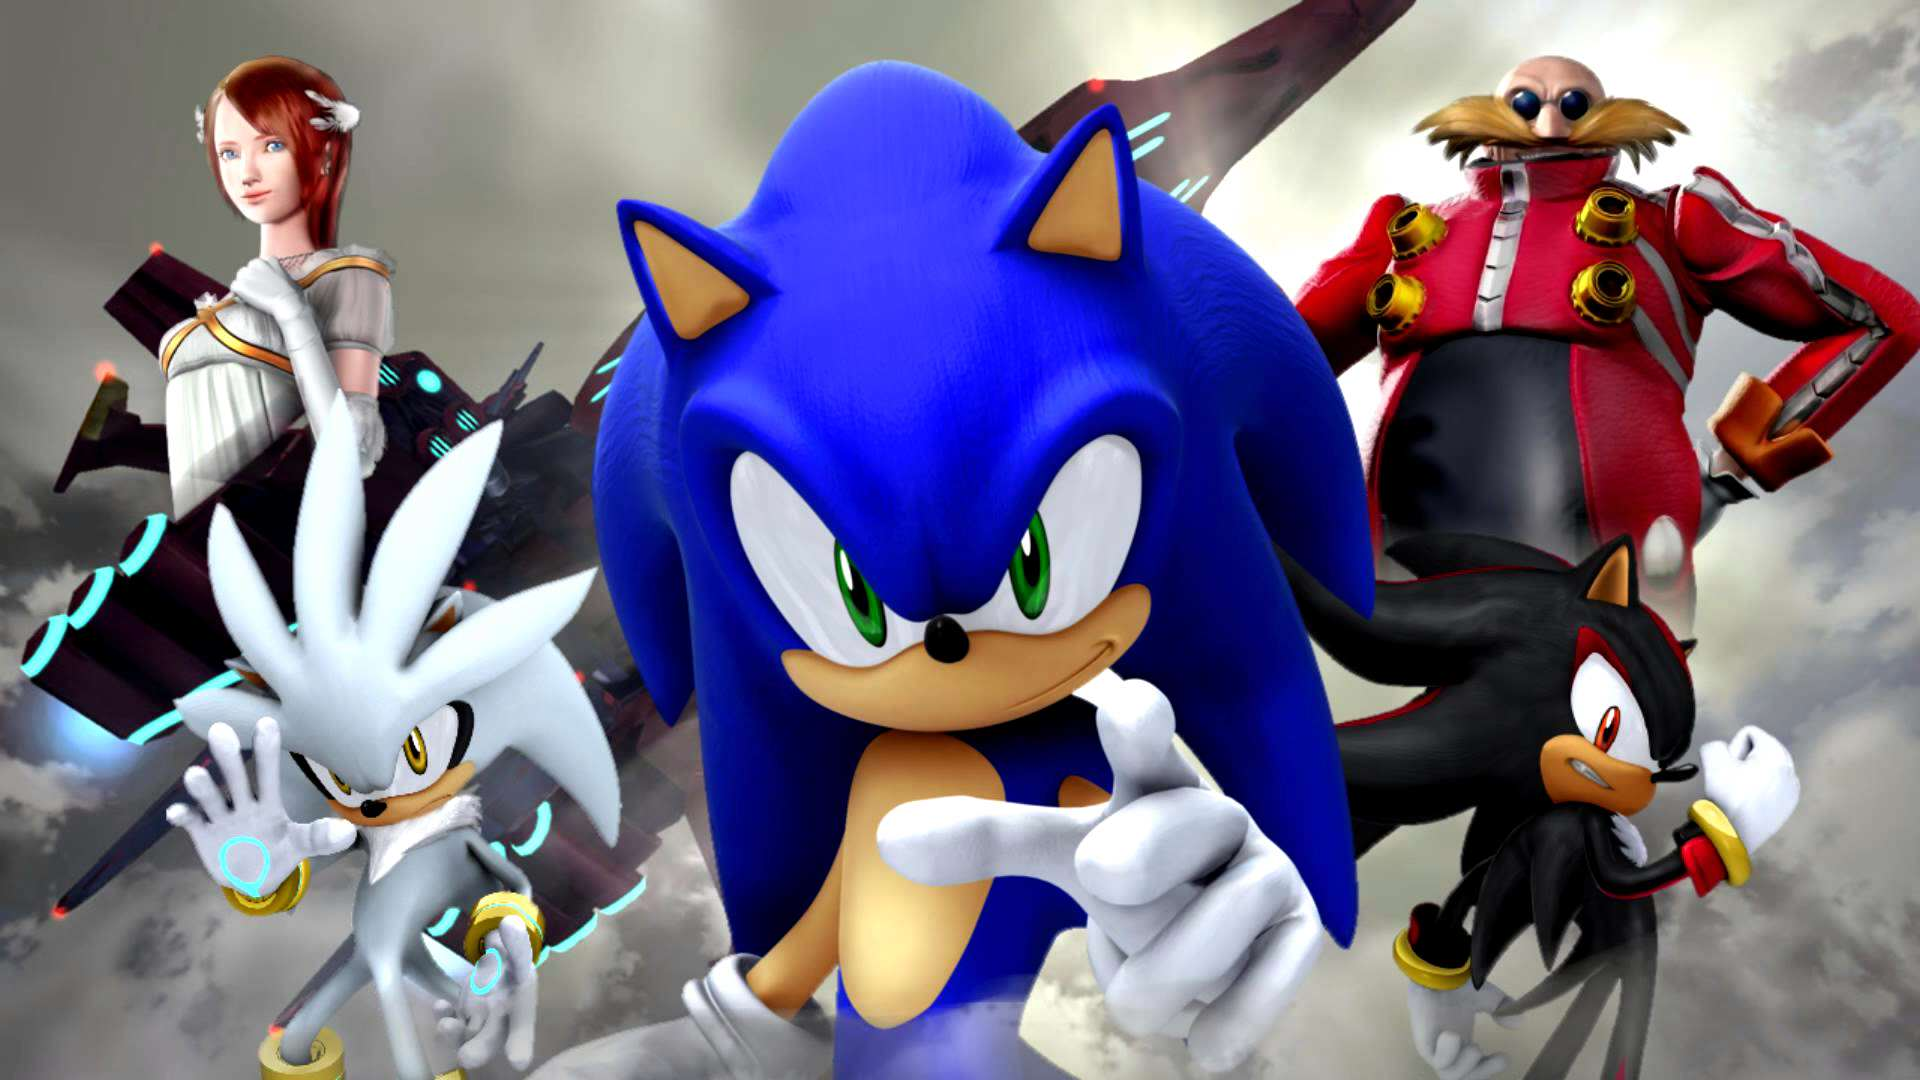 Sonic The Hedgehog Movie Wallpapers Wallpaper Cave